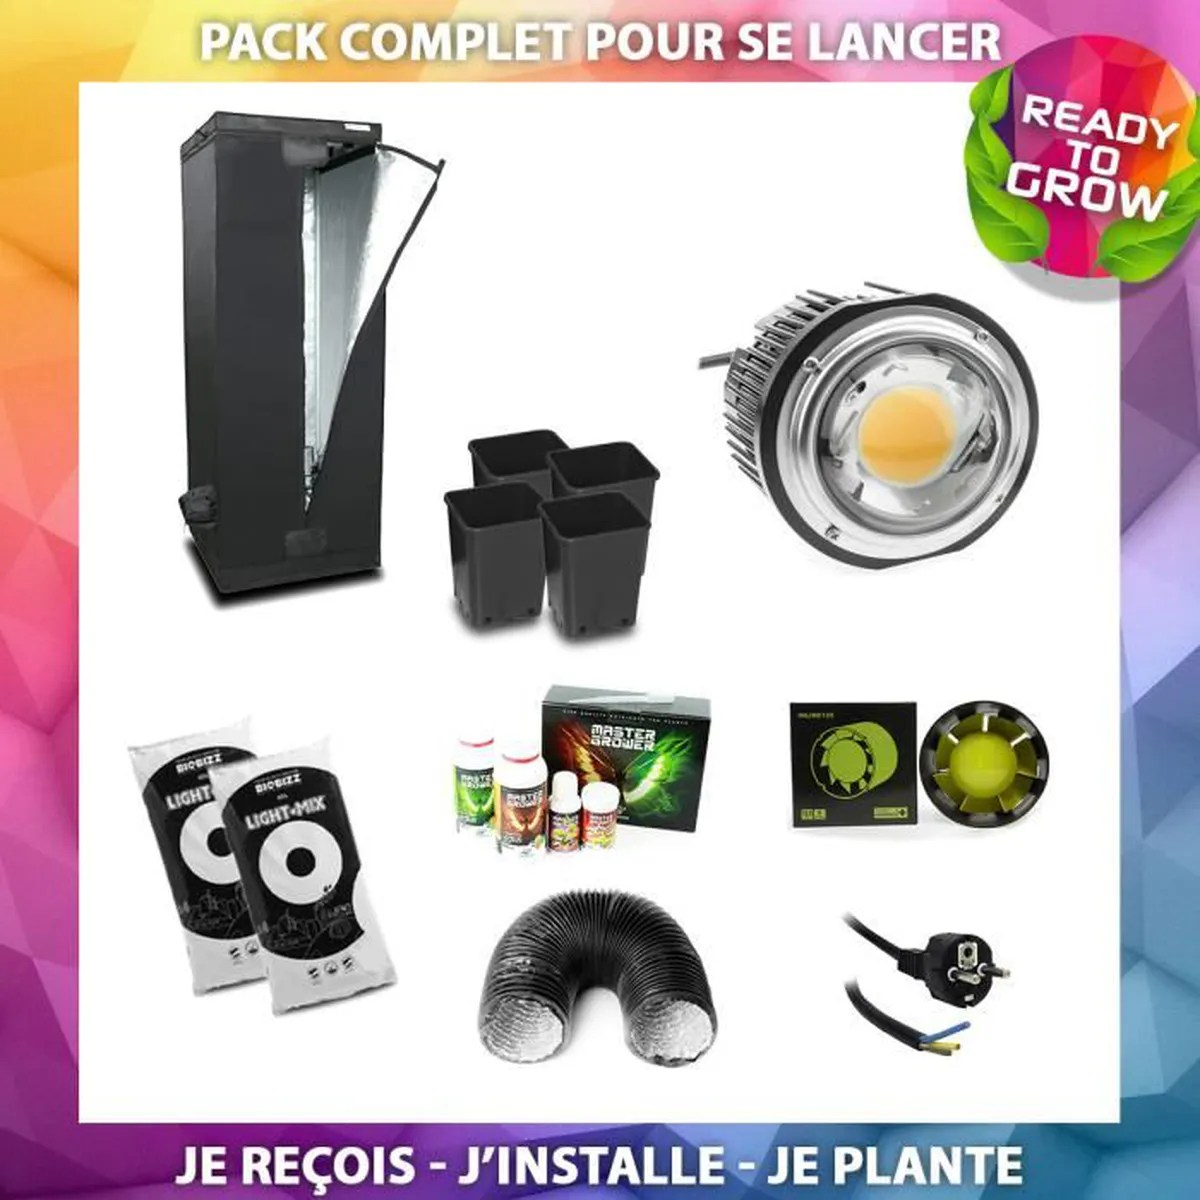 Kit Complet Chambre De Culture Pas Cher Pack Complet Homelab Spectrabud X60 Chambre De Culture Lampe Led Horticole Extracteur De Gaine Profan Ready To Grow